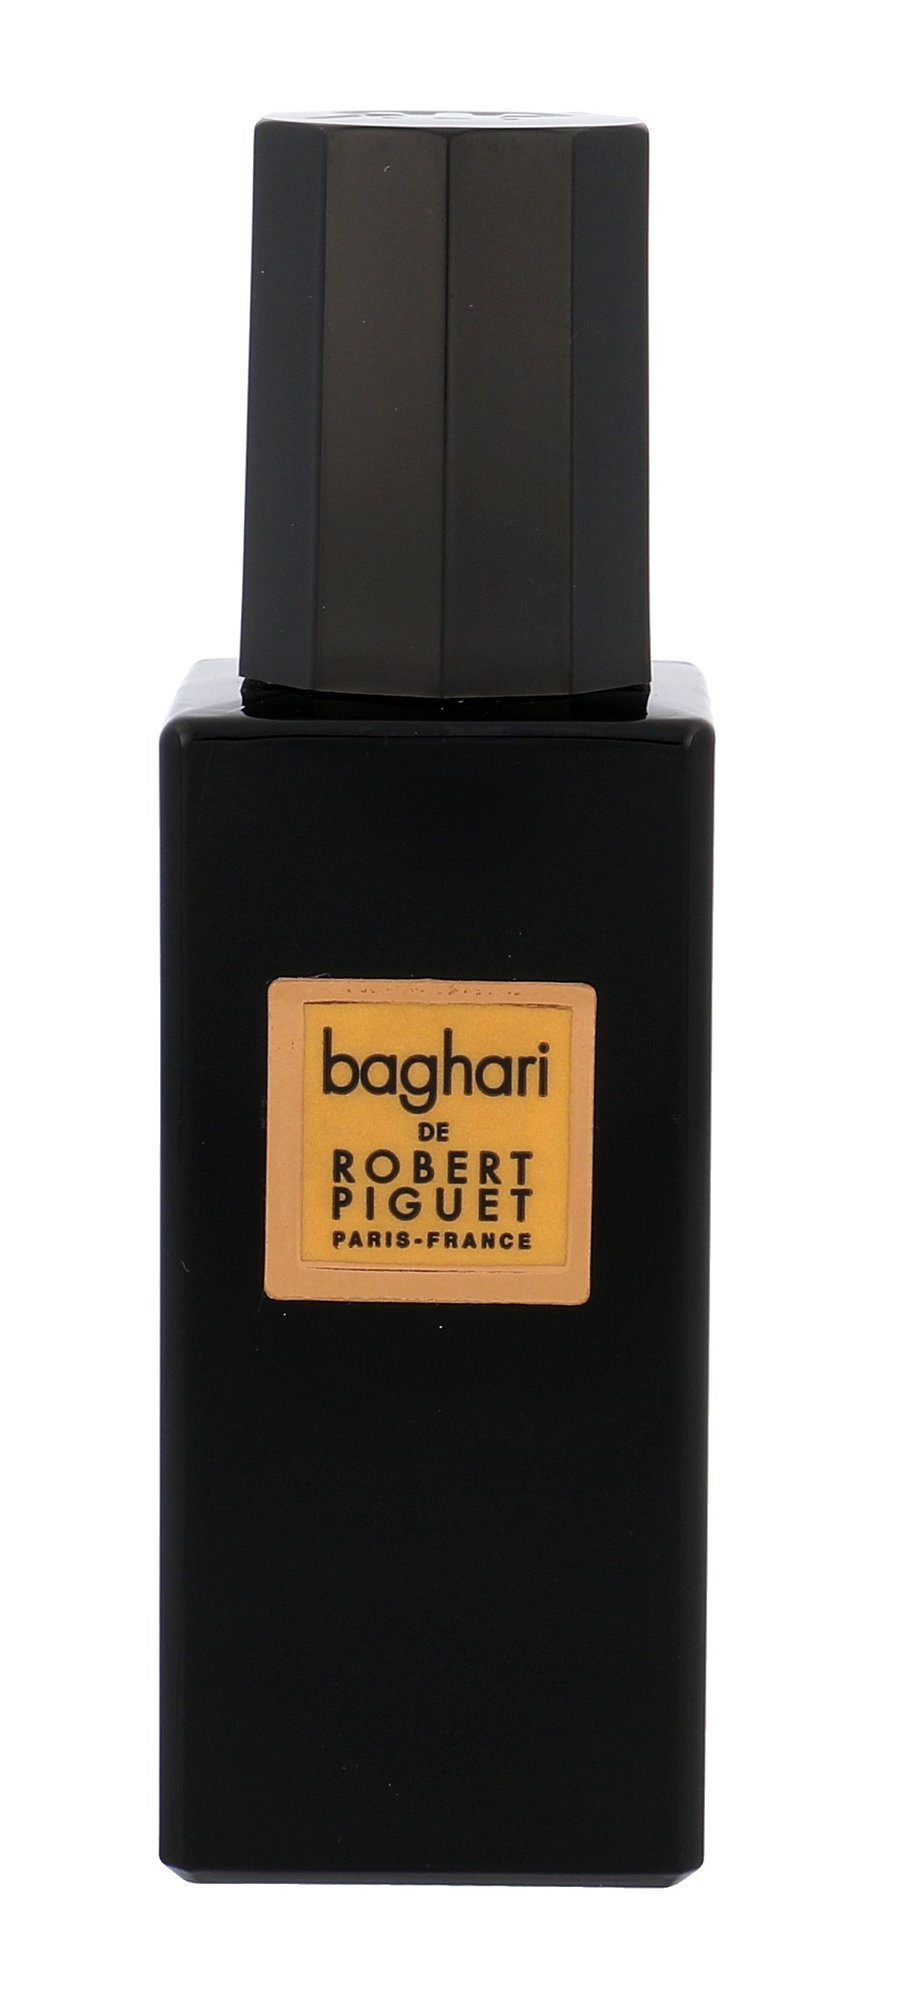 Robert Piguet Baghari 2006 EDP 50ml